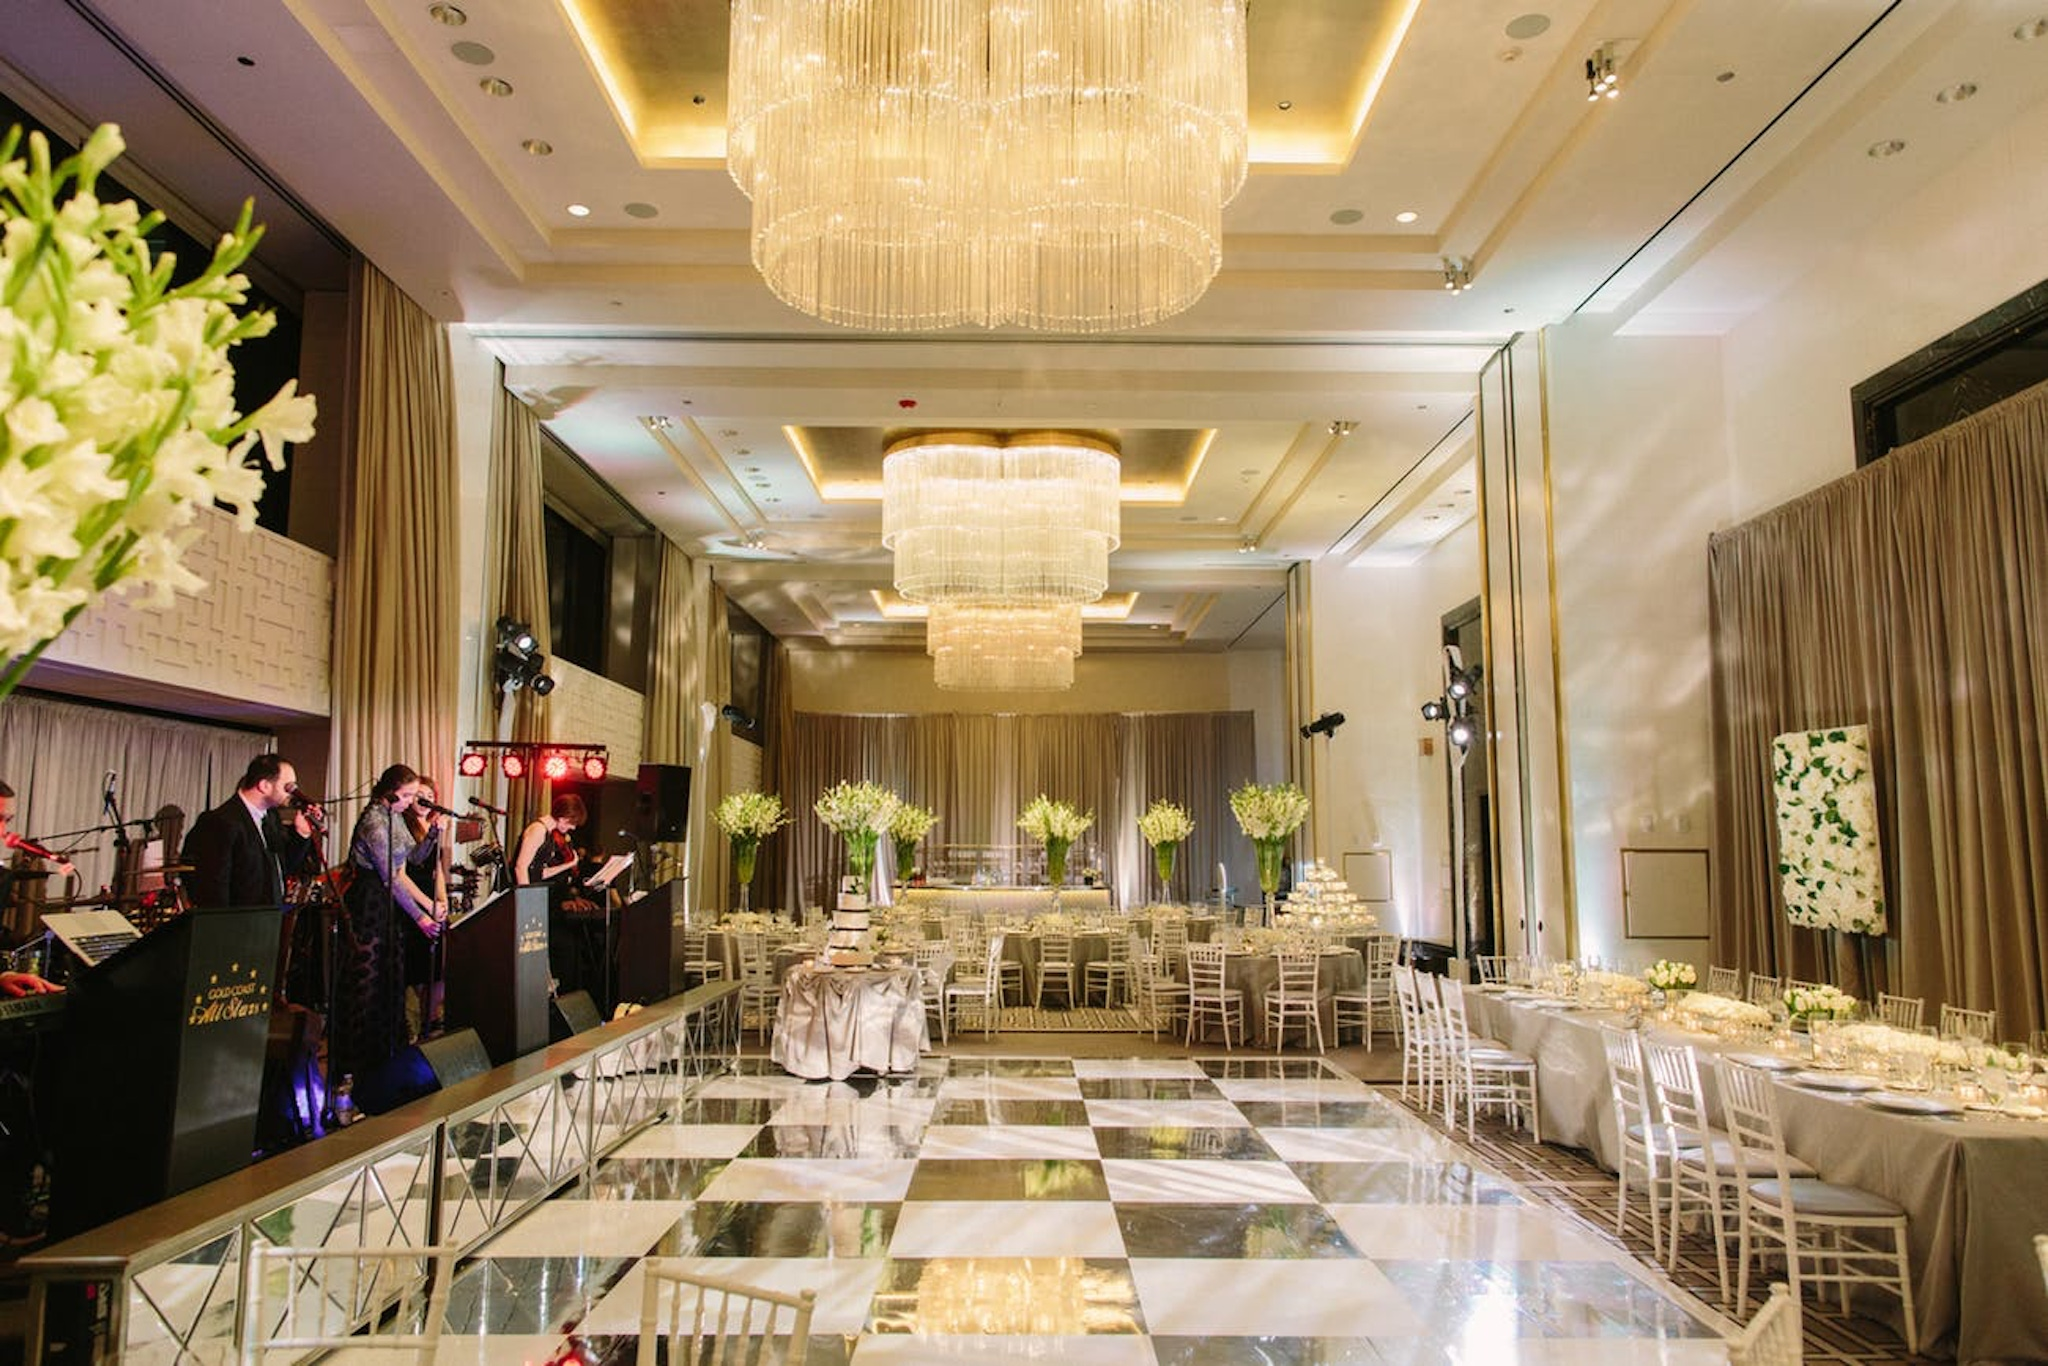 The Langham Chicago ballroom set up for a new years eve wedding with dance floor and reception set up